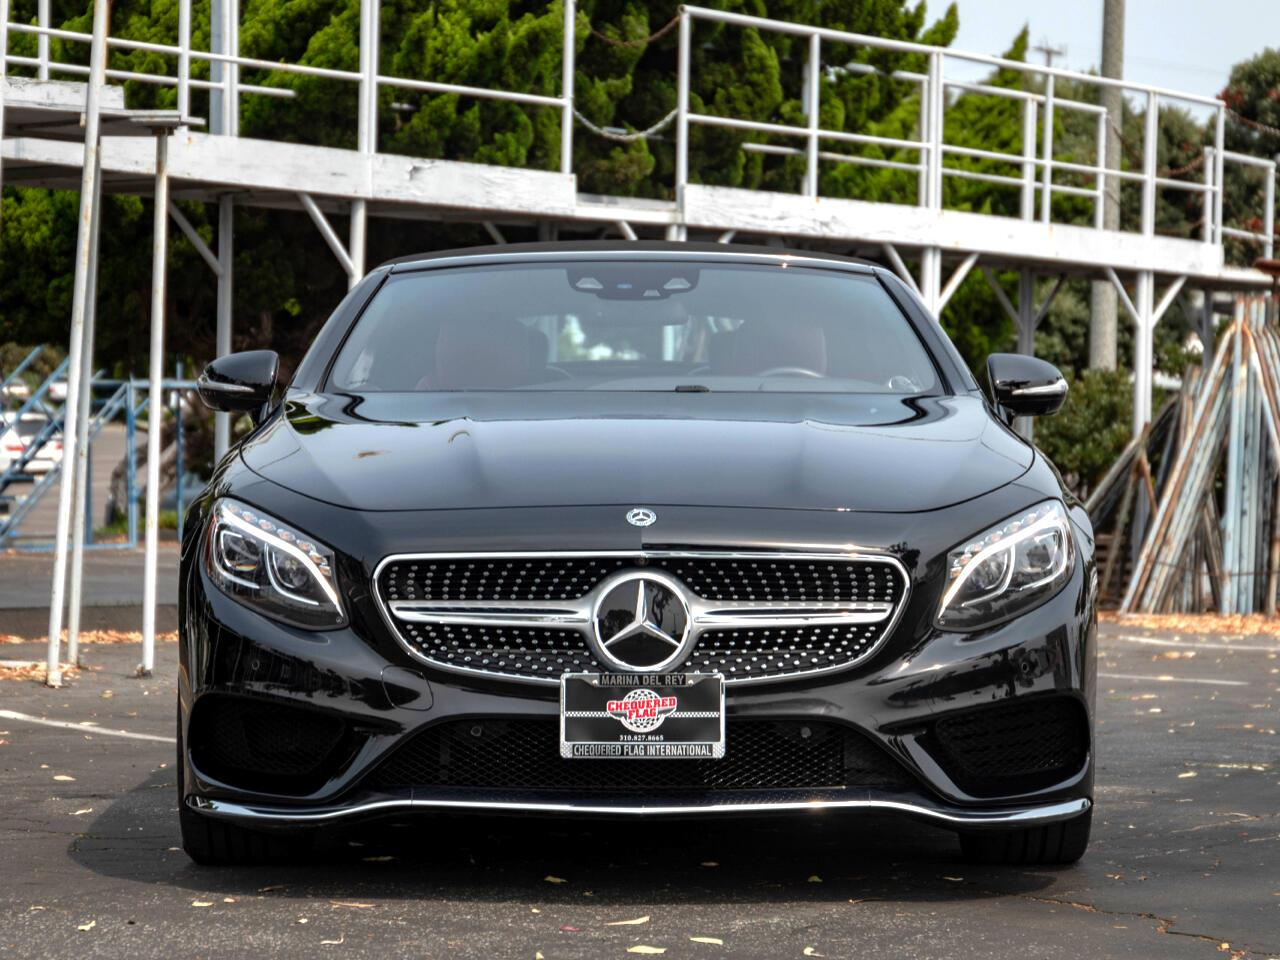 2017 Mercedes-Benz S550 (CC-1388919) for sale in Marina Del Rey, California